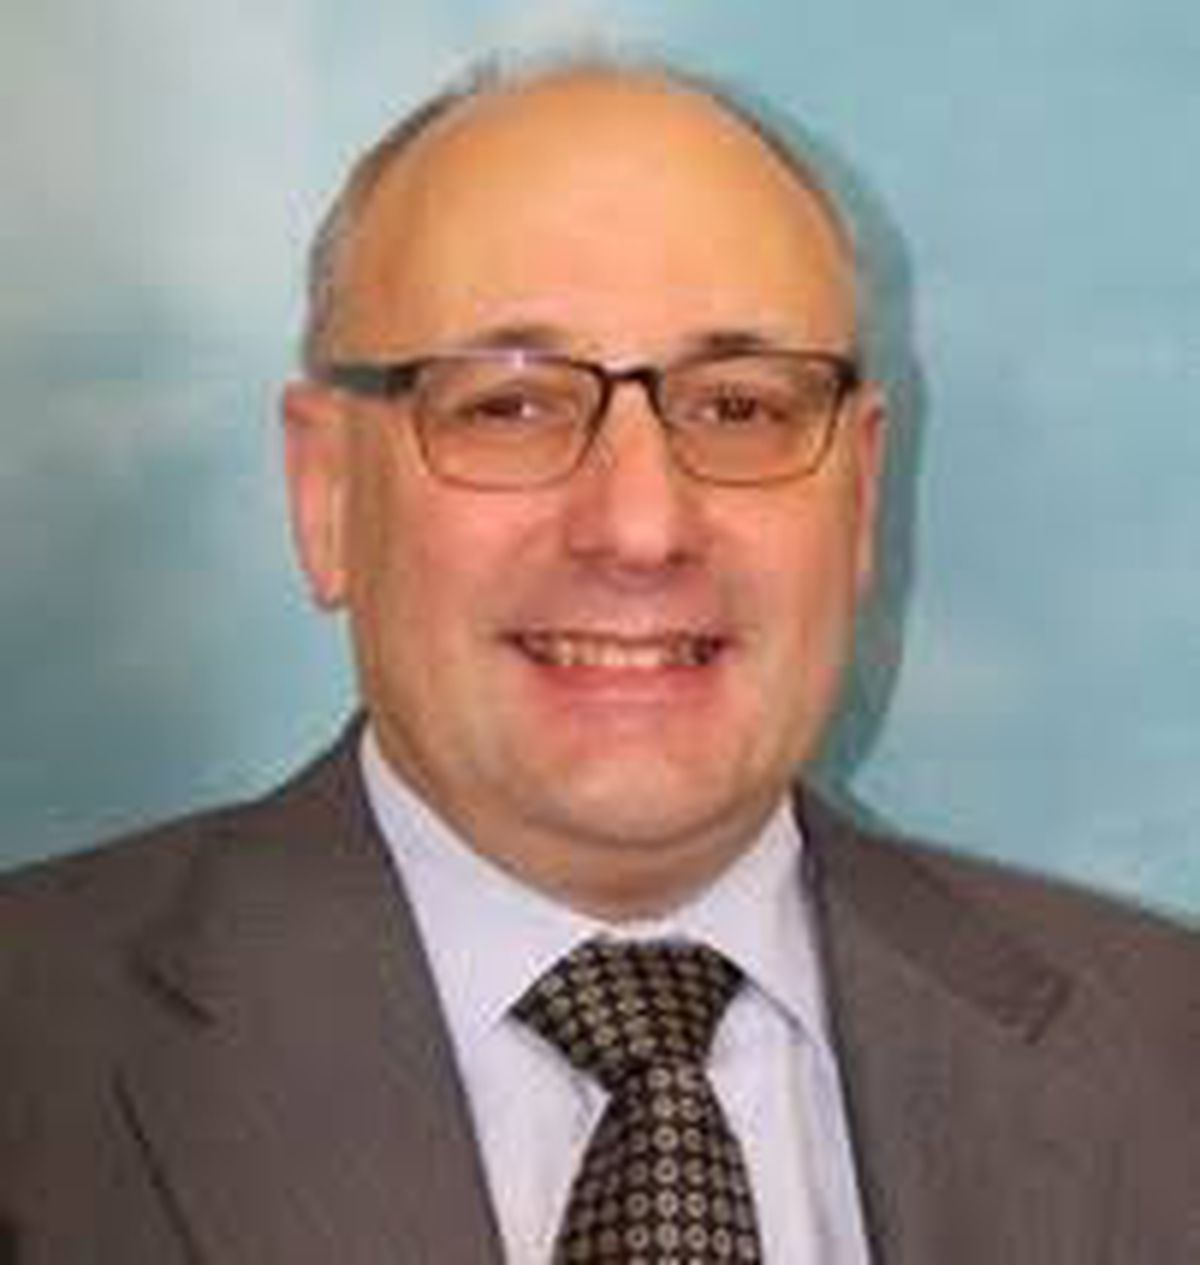 Head of Legal and Democratic Services and Monitoring Officer to Powys Council, Clive Pinney